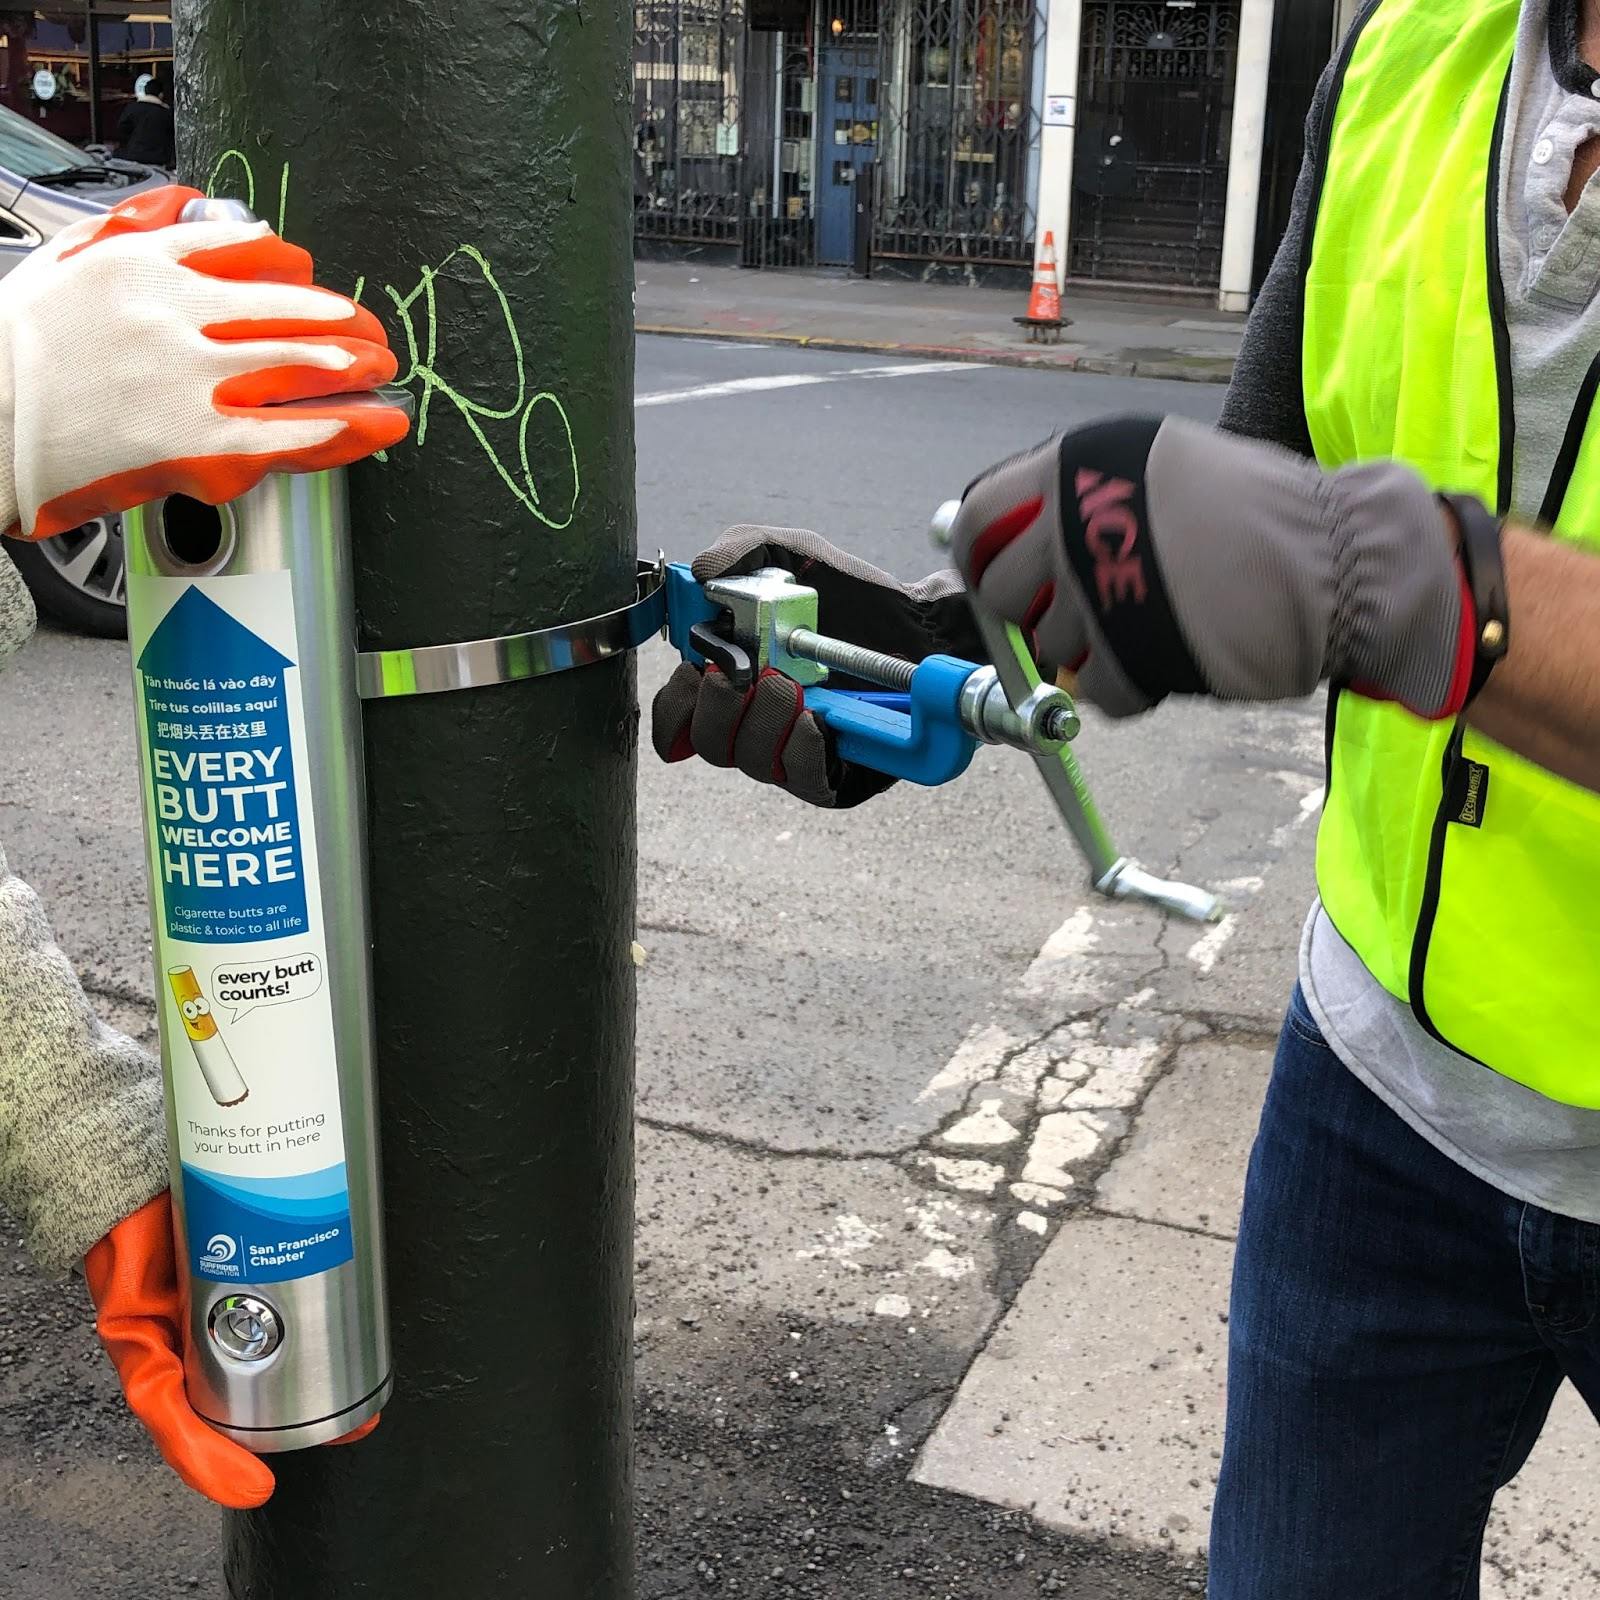 A metal cigarette butt disposal canister getting installed onto a pole along the street.